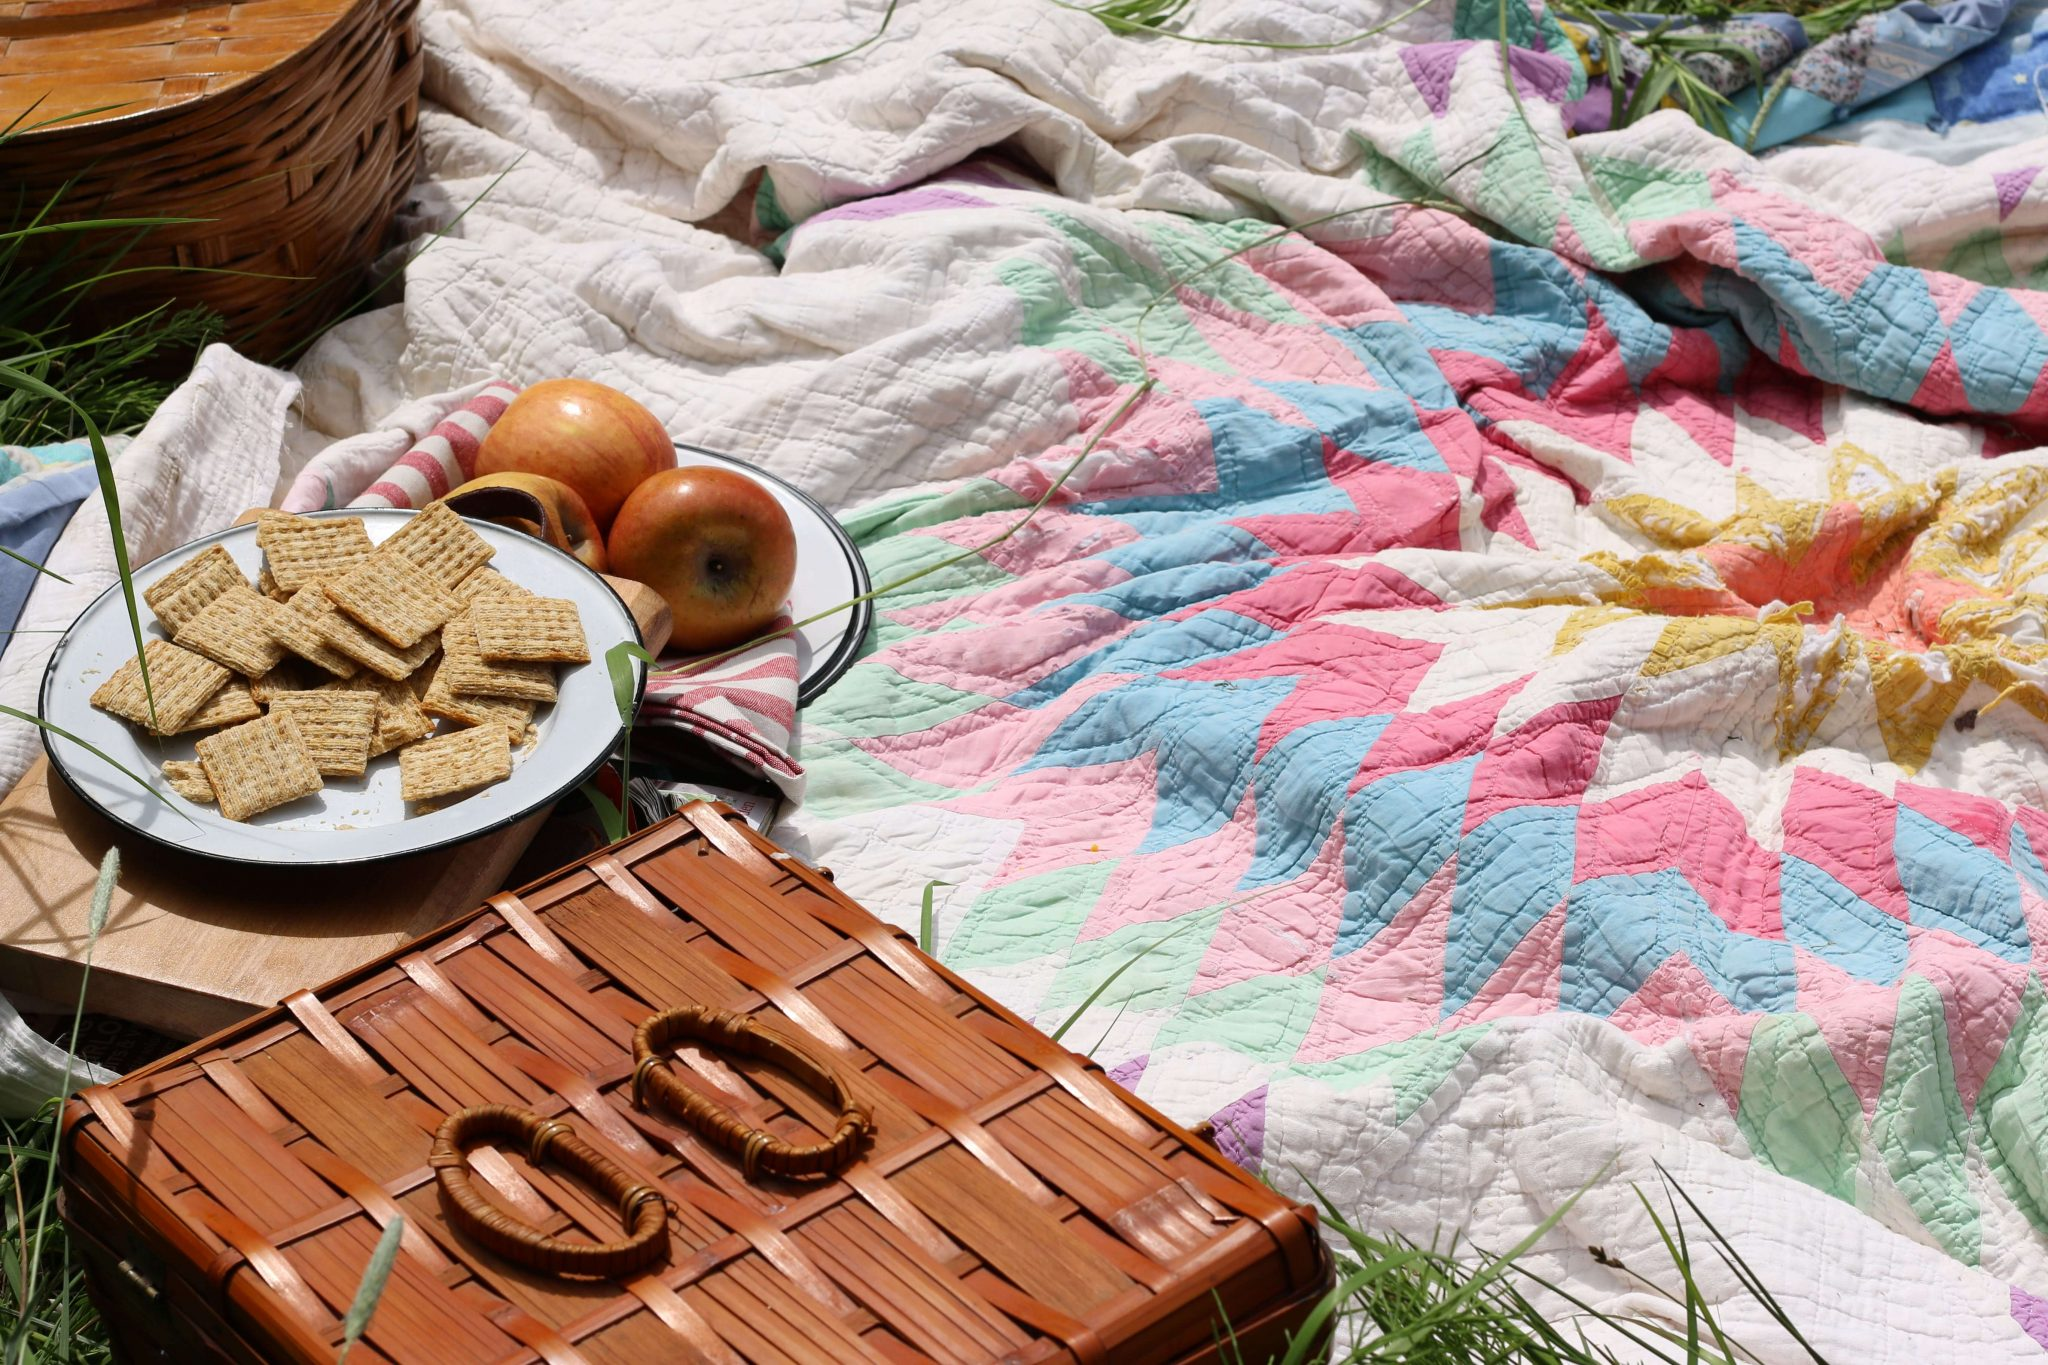 A Picnic with old quilts, good food and the beautiful outdoors!